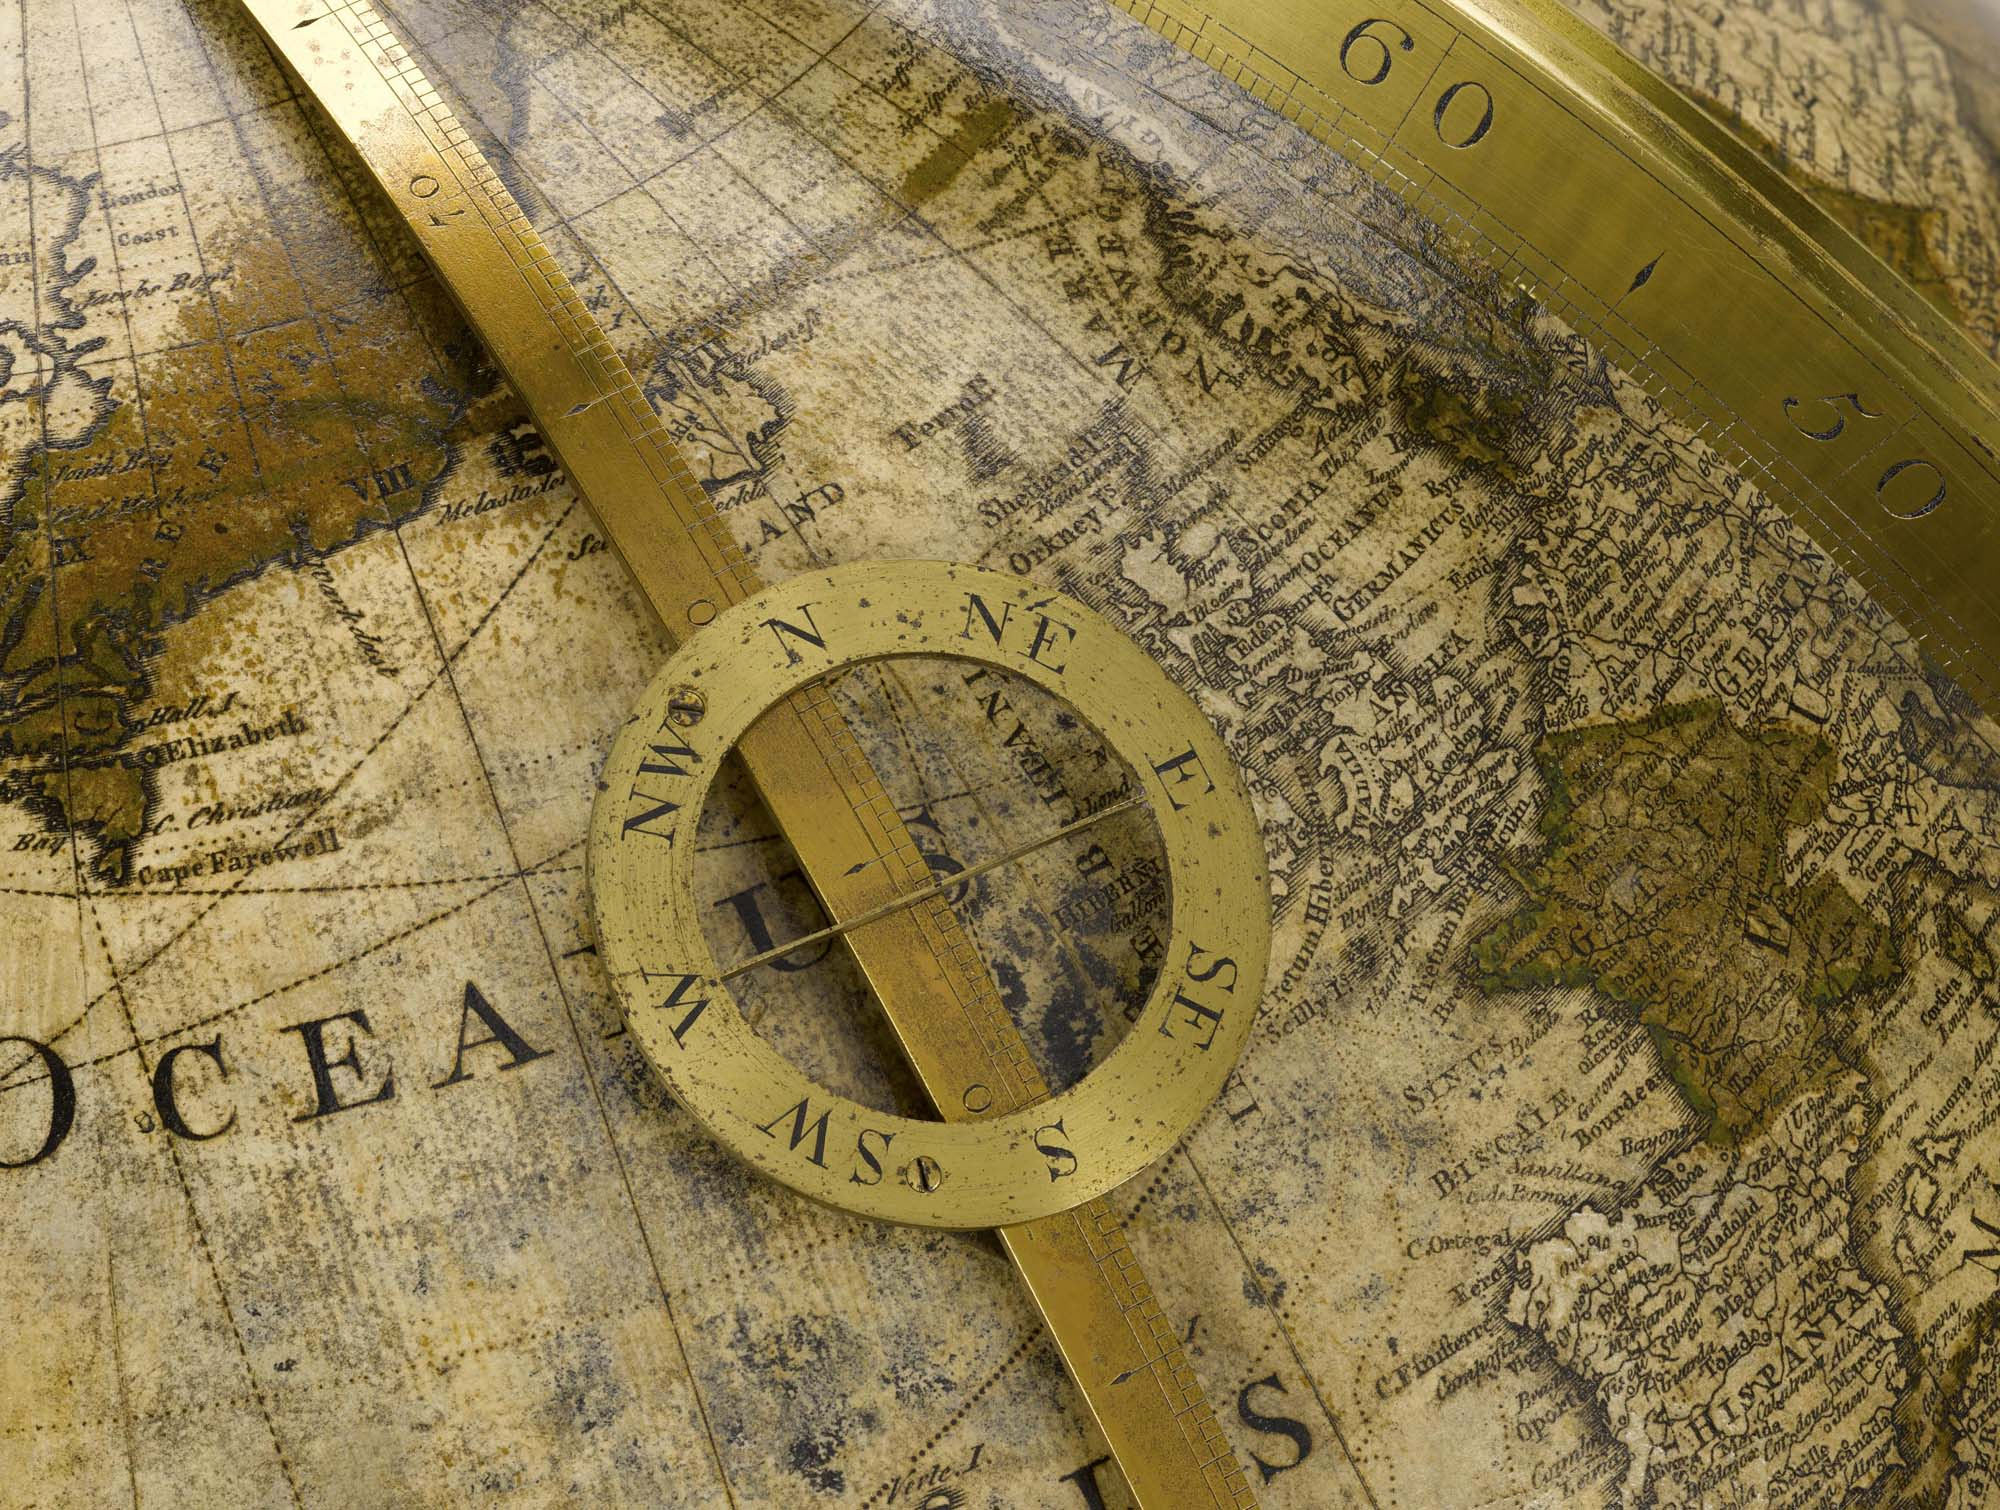 a close up of an old globe